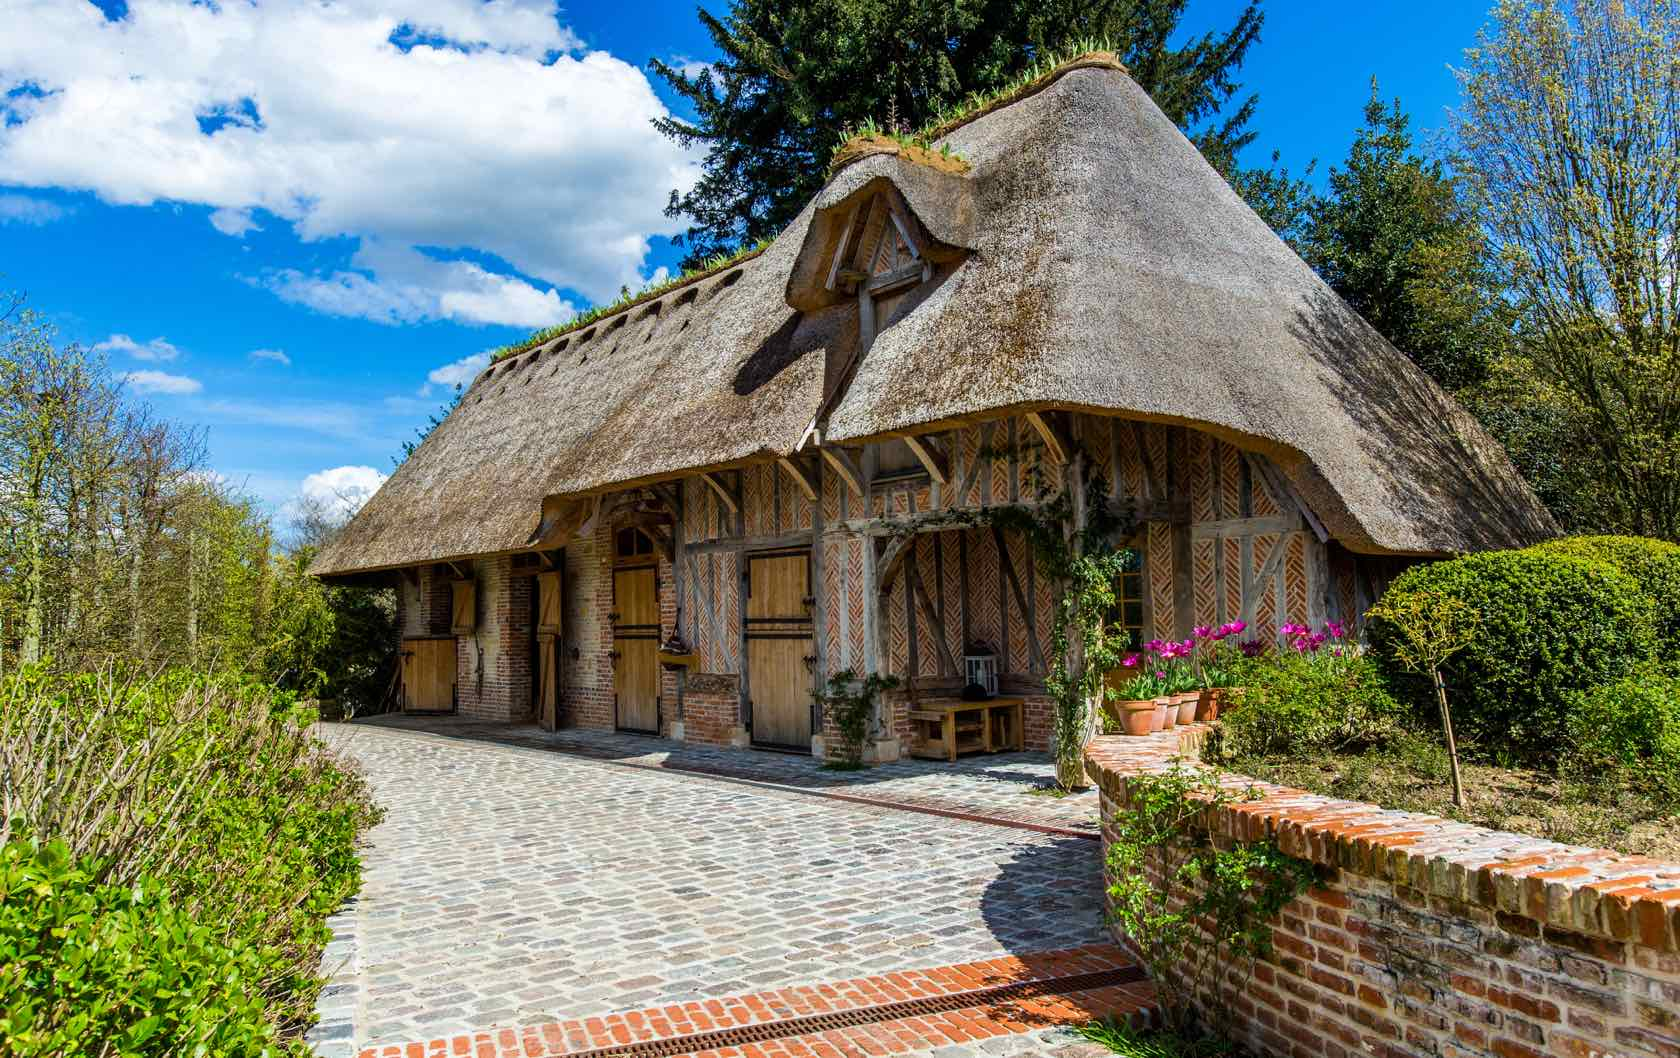 Introducing Our Vacation Rentals in Normandy France